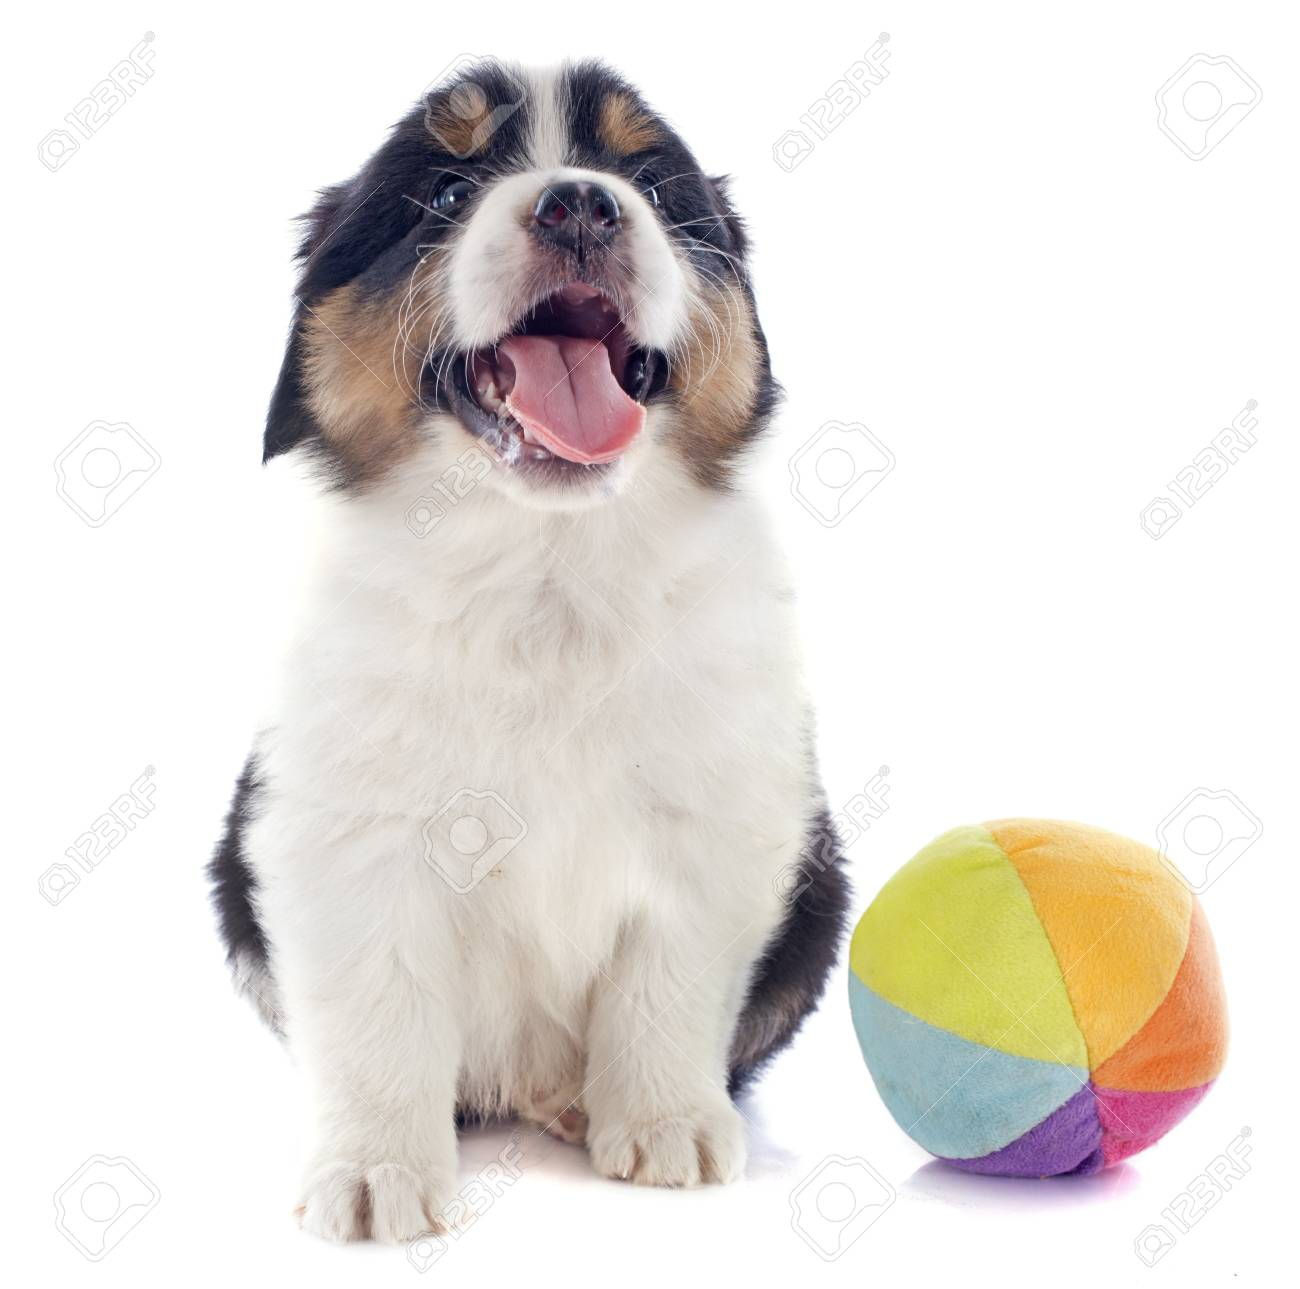 purebred puppy australian shepherd and ball in front of white background Stock Photo - 20752486